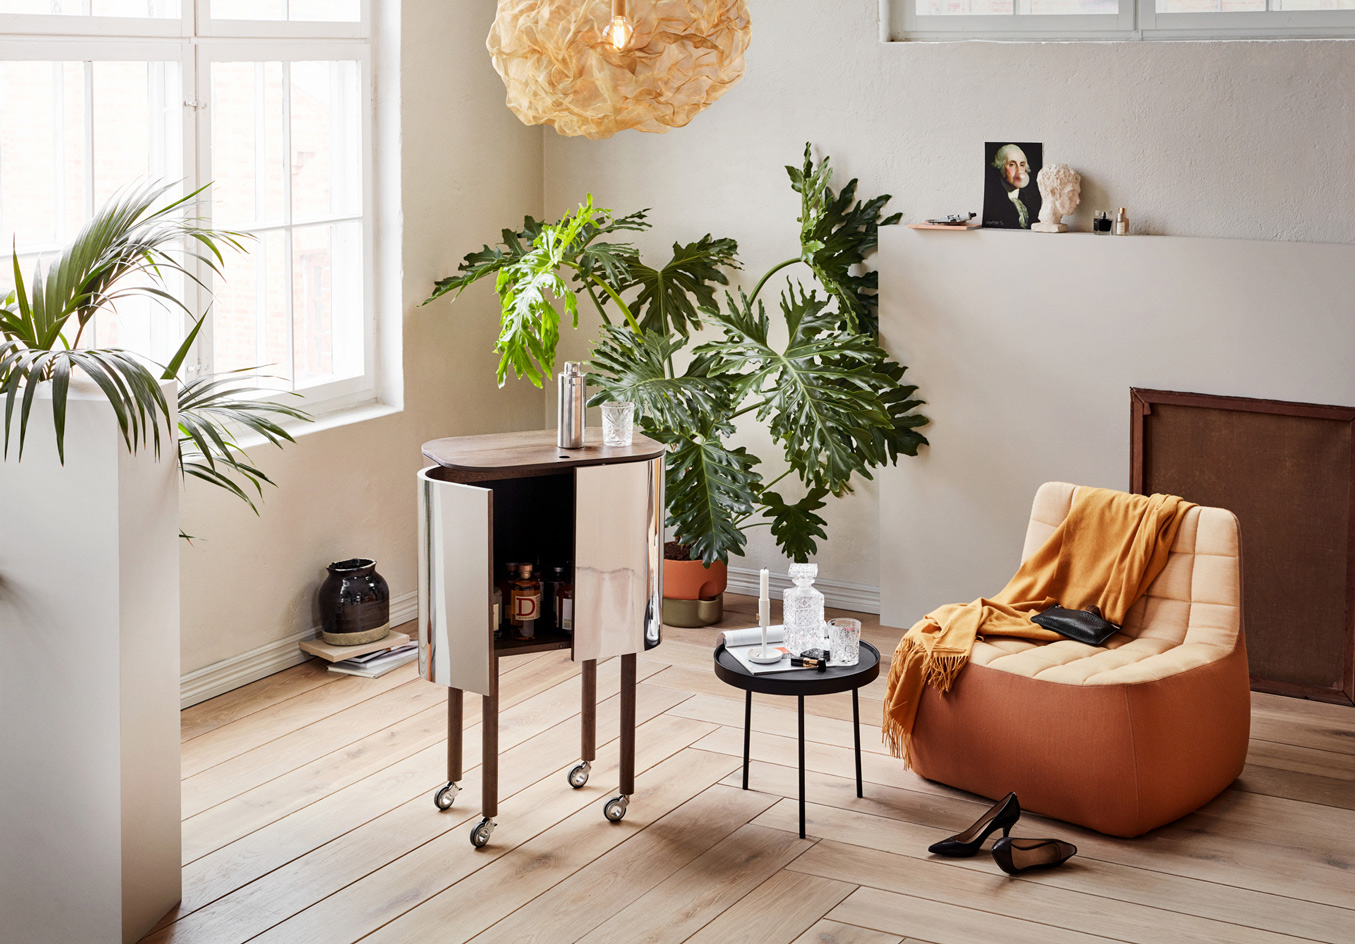 New Brand Northern Has Attracted The Likes Of Designers Vera U0026 Kyte, Färg U0026  Blanche And Rudi Wulff To Design Its Debut Collection Which Consists Of 24  ...